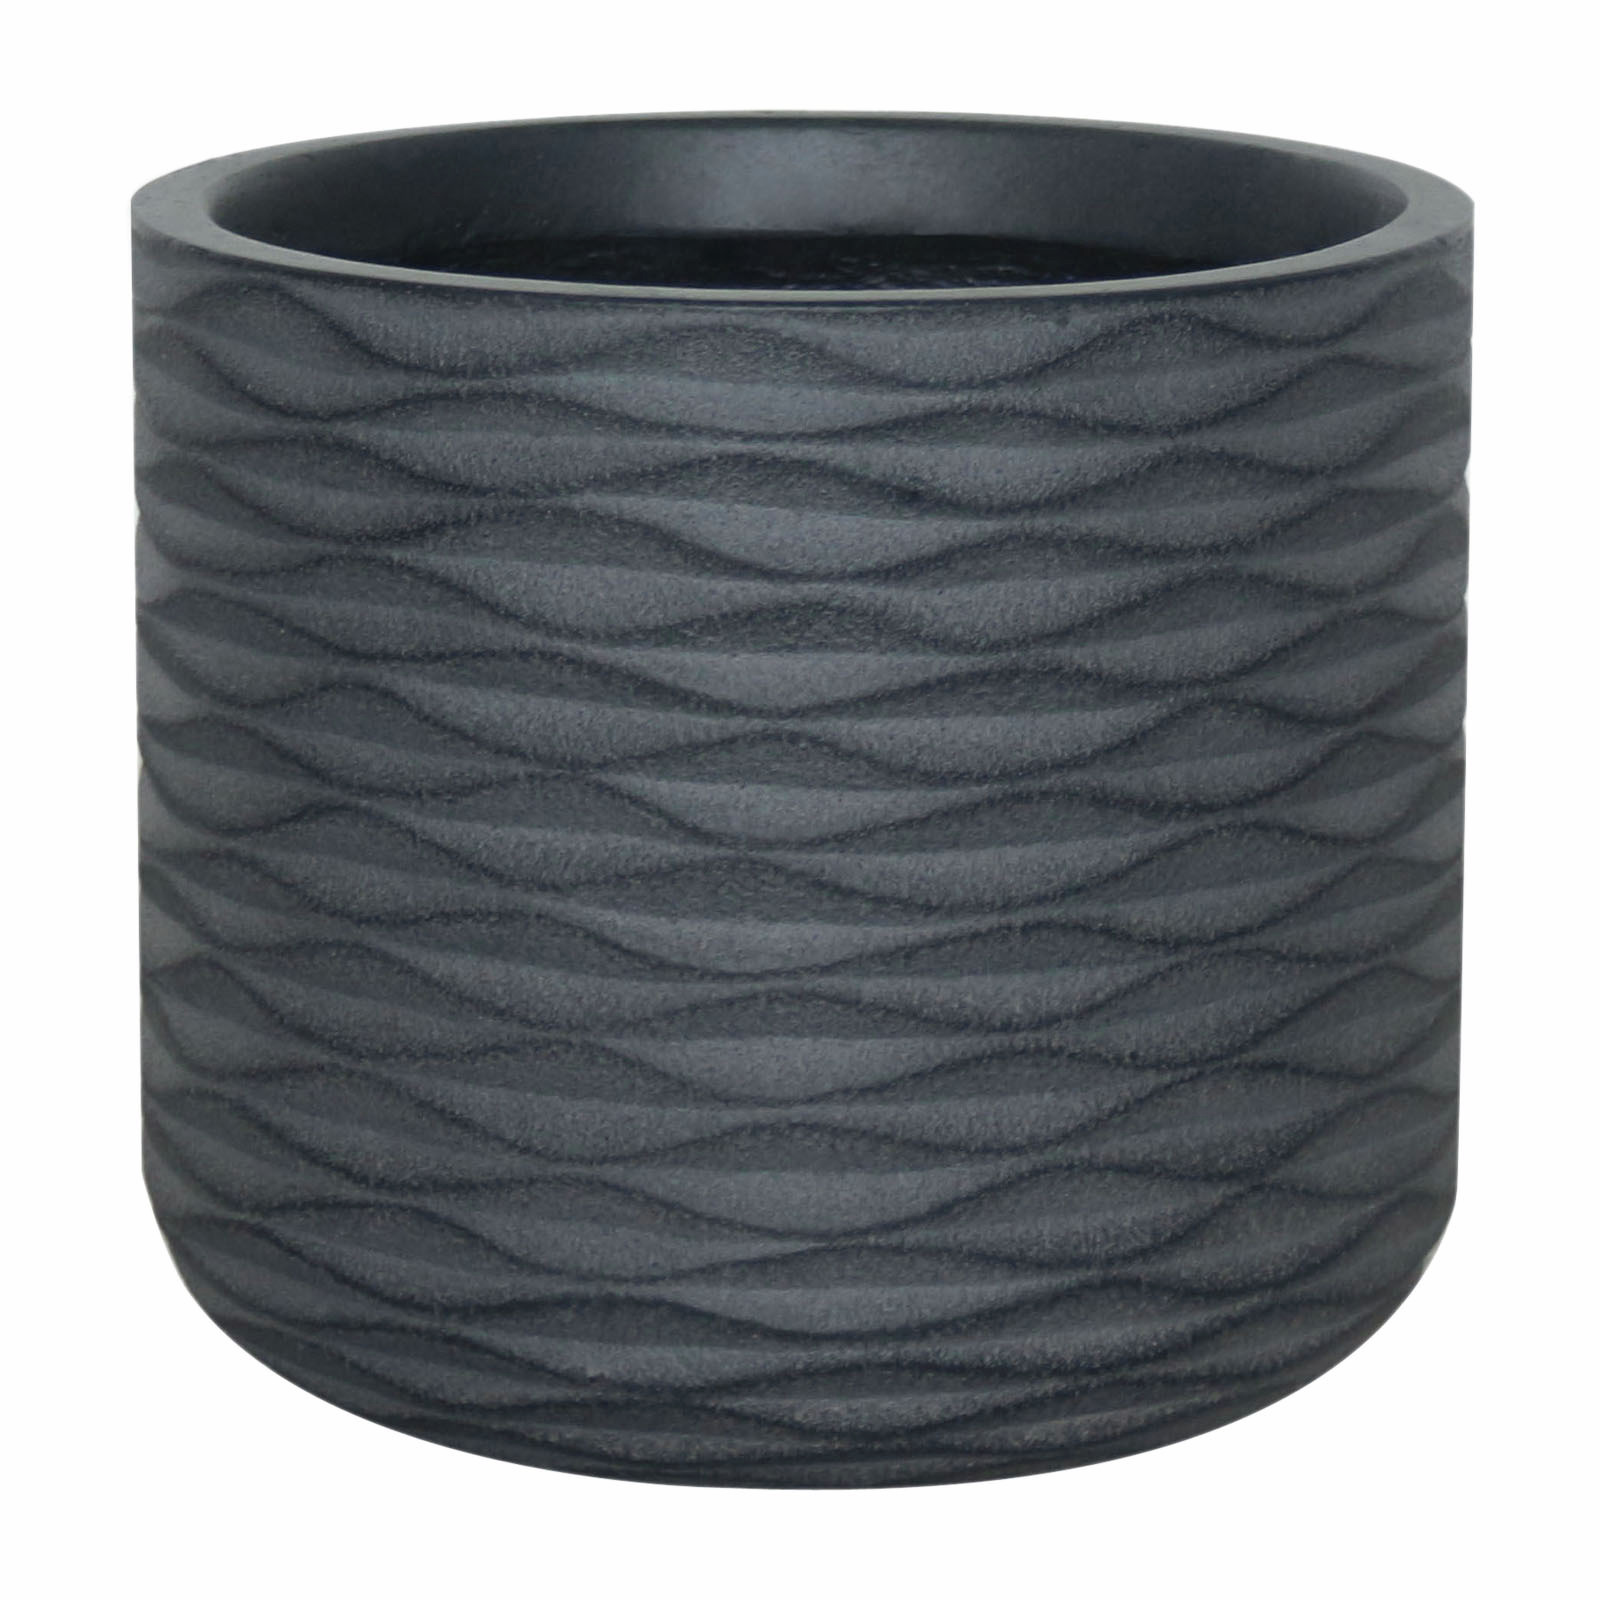 Northcote Pottery 23cm Black Small Wave Cylinder